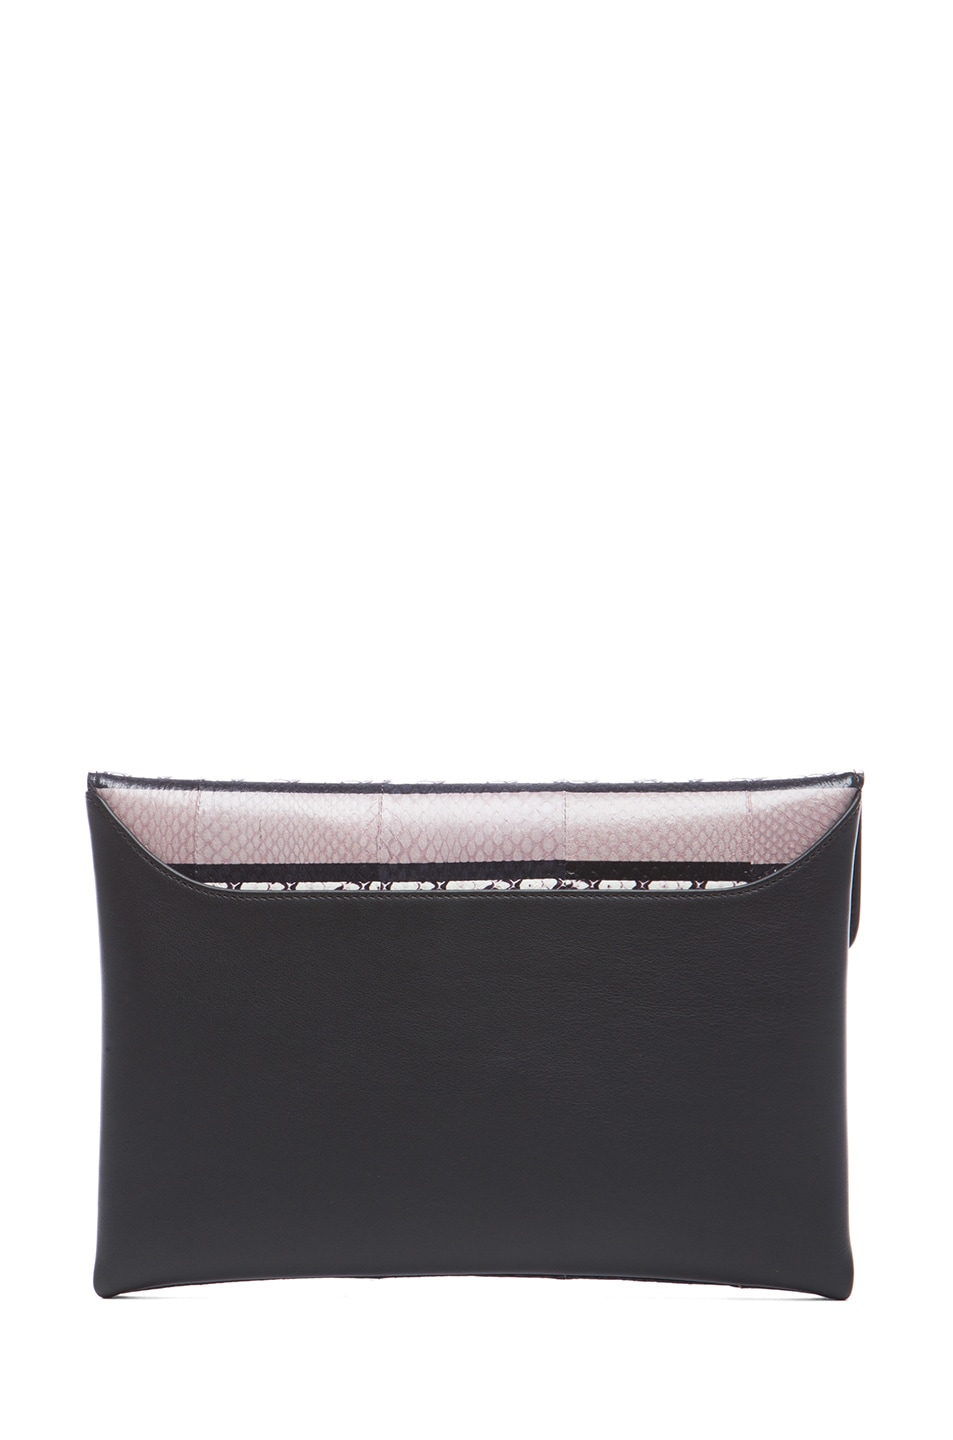 Image 2 of GIVENCHY Medium Ayers Antigona Envelope Clutch in Beige Stripe